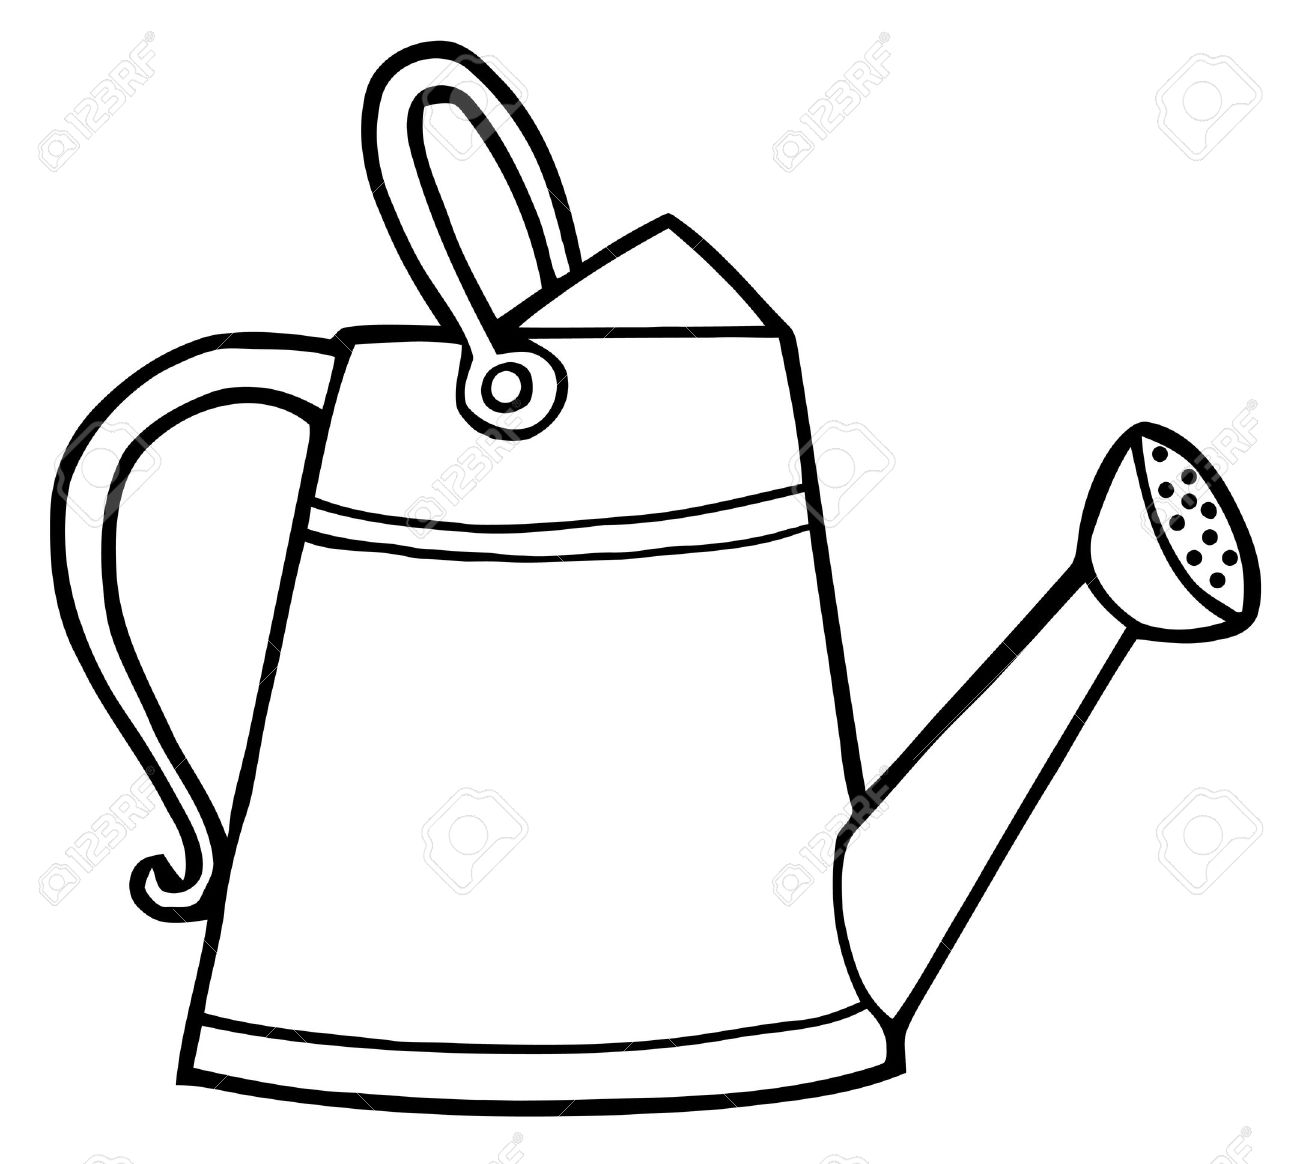 Drawing at getdrawings com. April clipart watering can